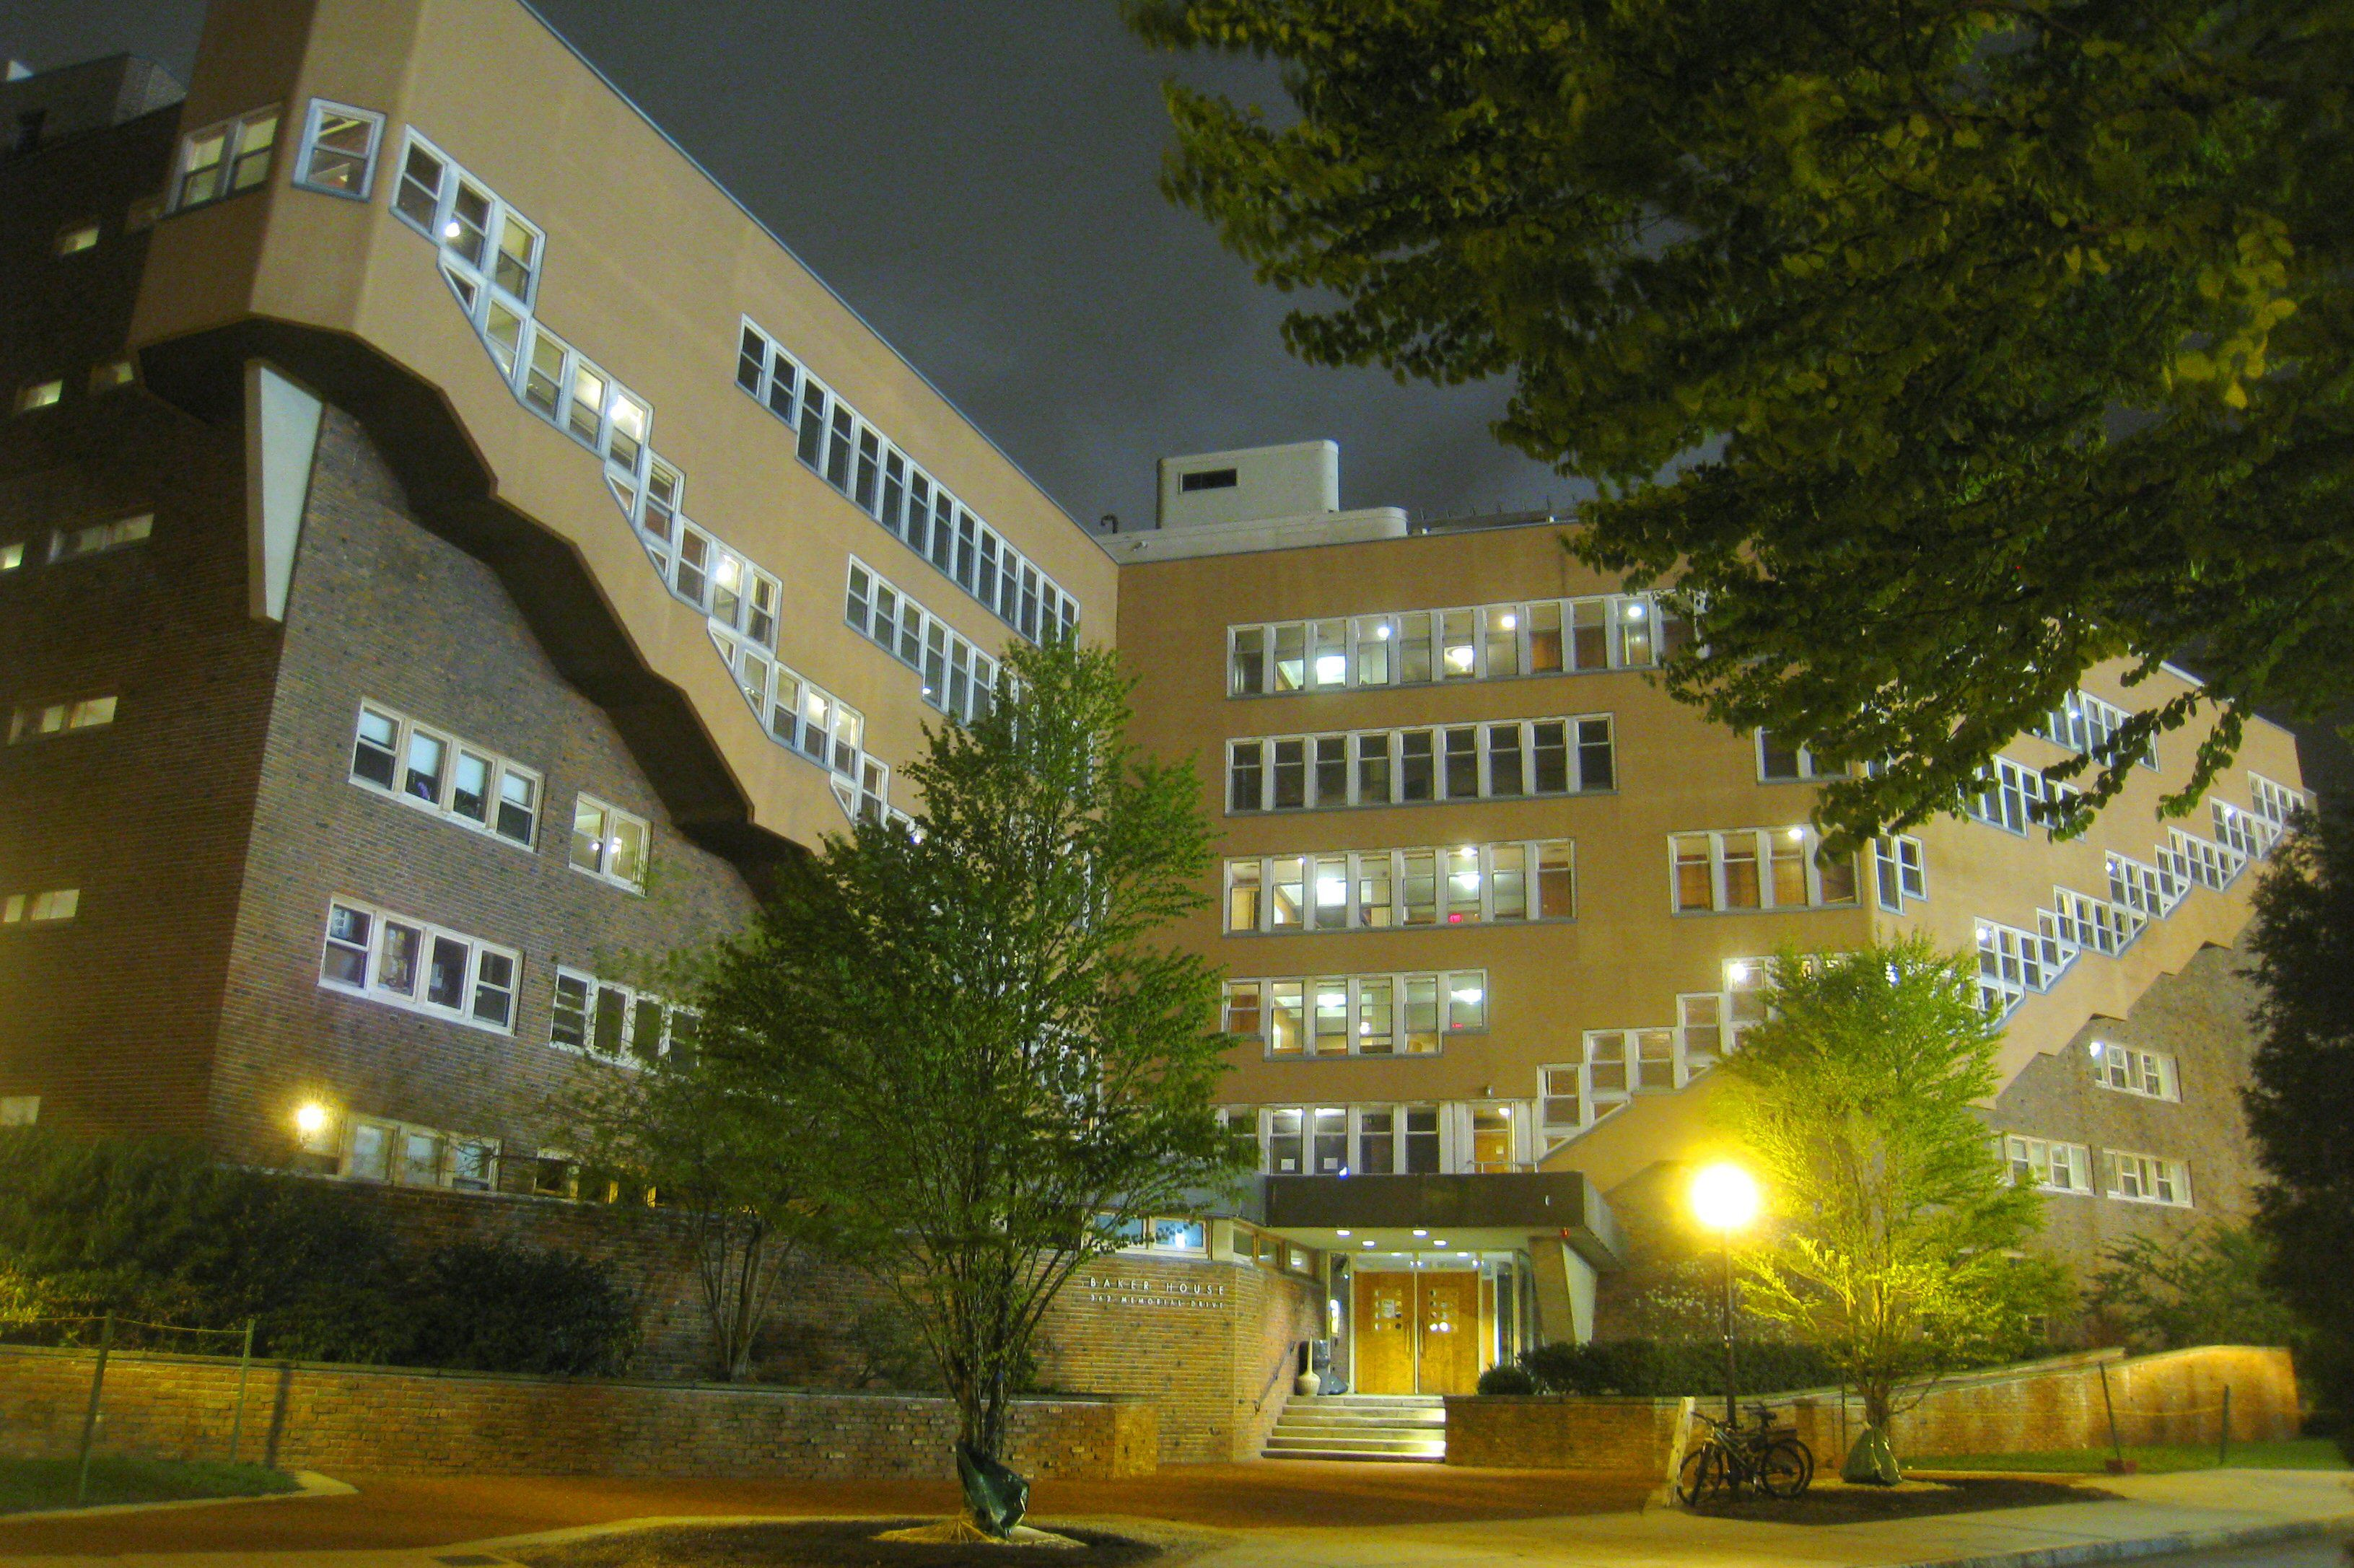 Night view of The Baker House at MIT by Alvar Aalto